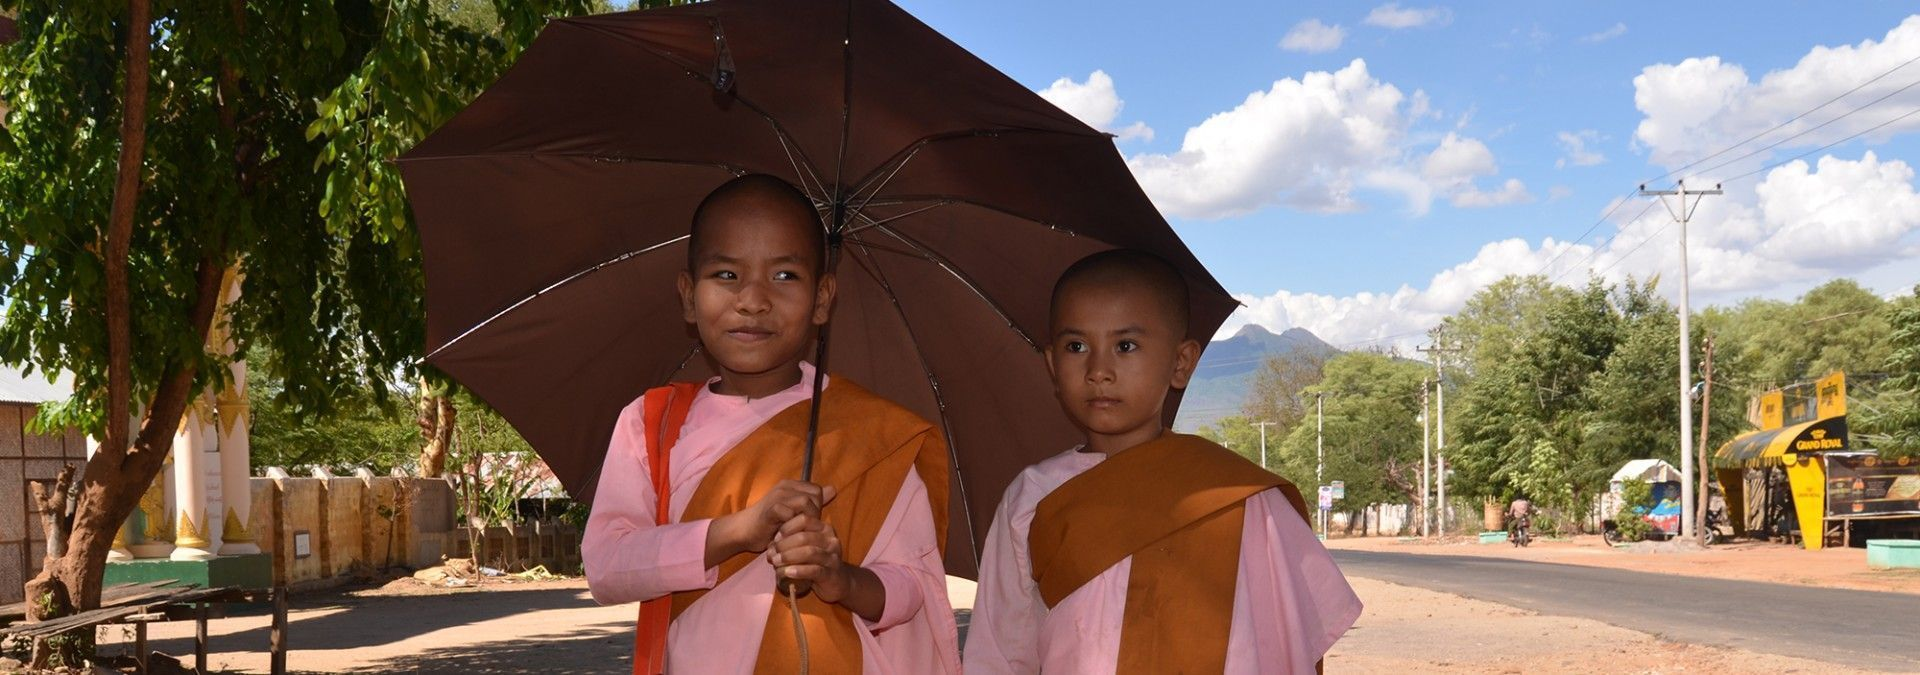 Children_of_Burma.jpg